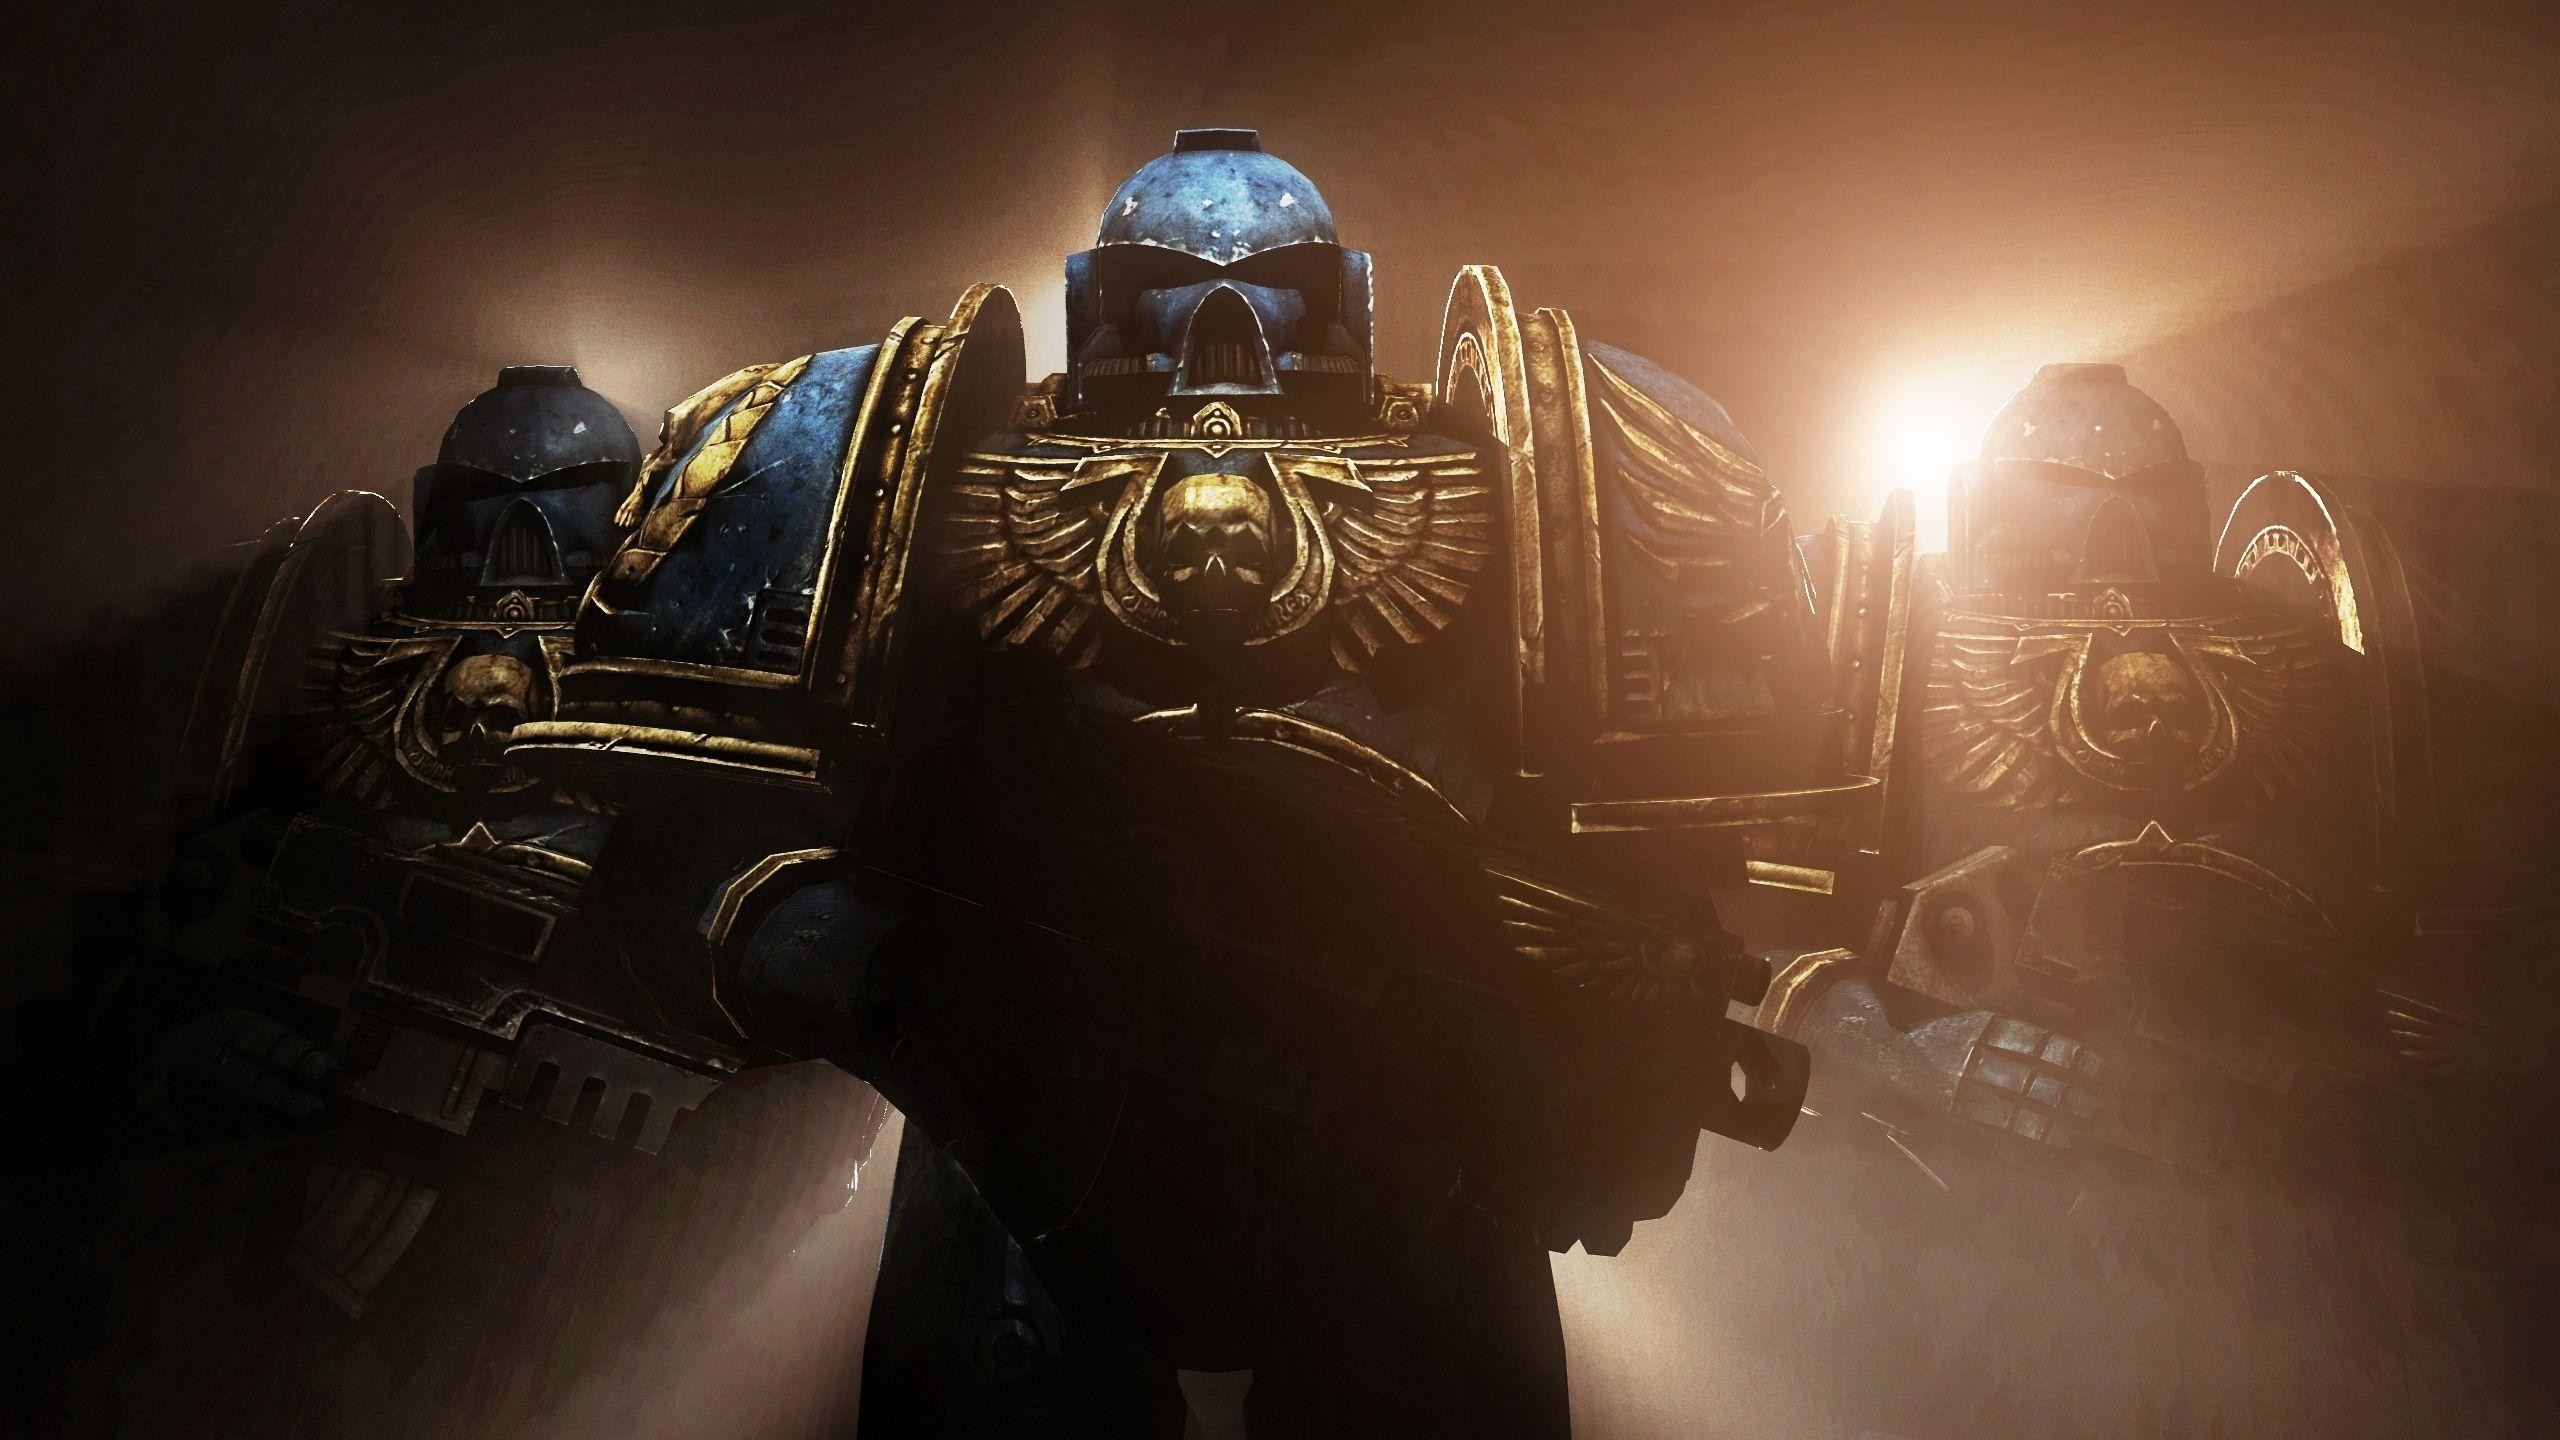 2560x1440 Space Marine HD Wallpaper | Space Marine Images | Cool Wallpapers